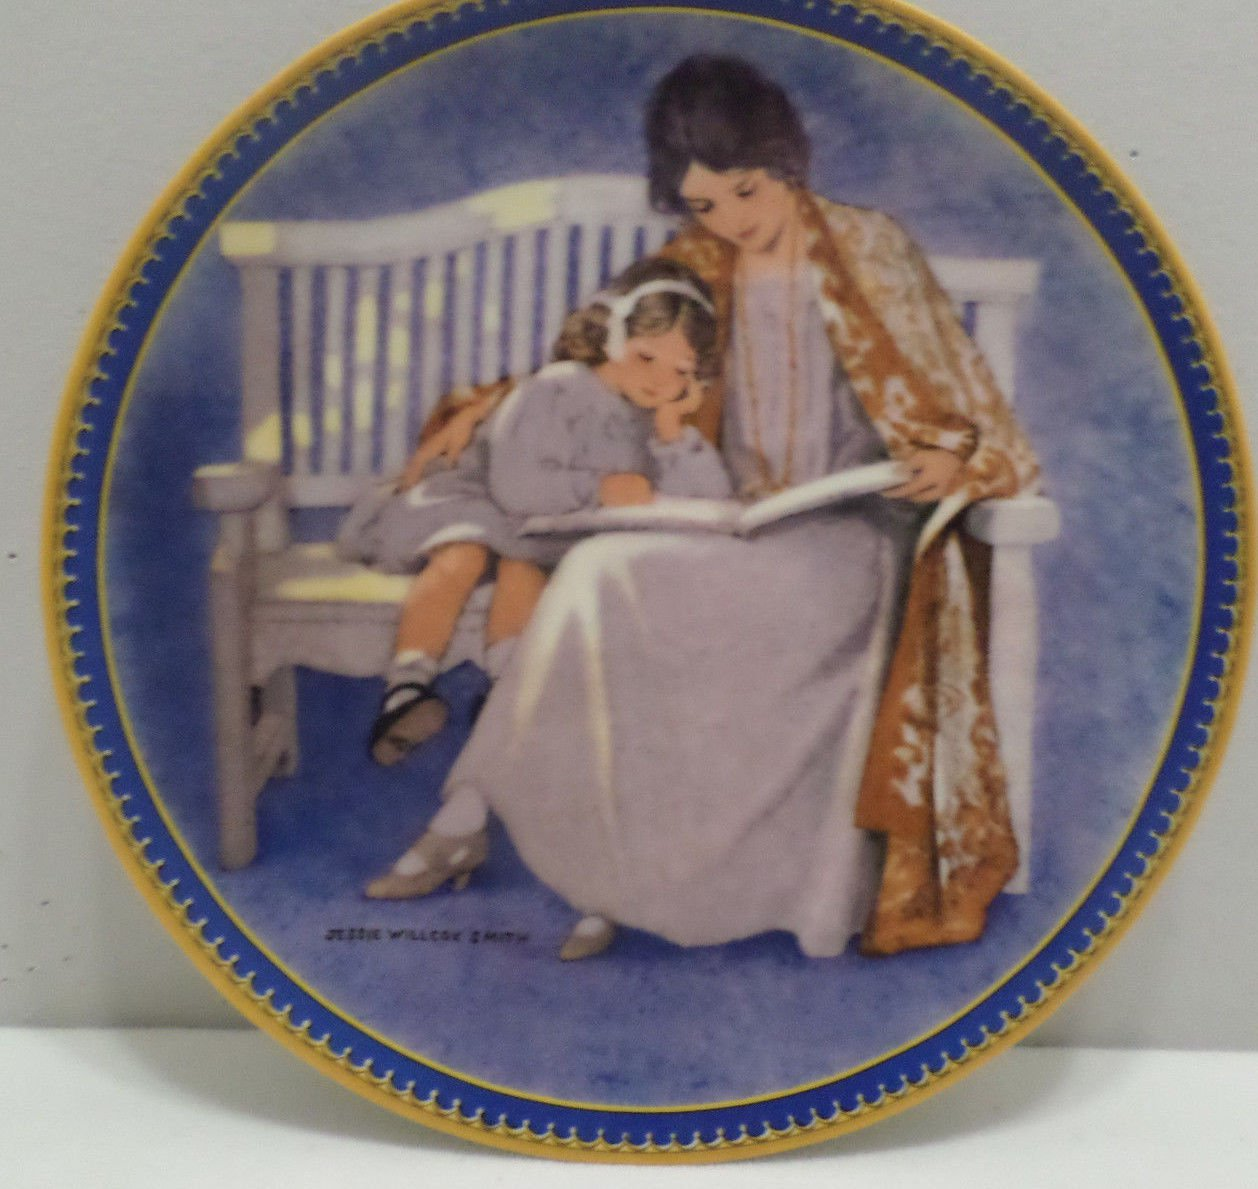 1987 Collector Plate Mother's Day by Jessie Wilcox Smith The Hearst Corp.